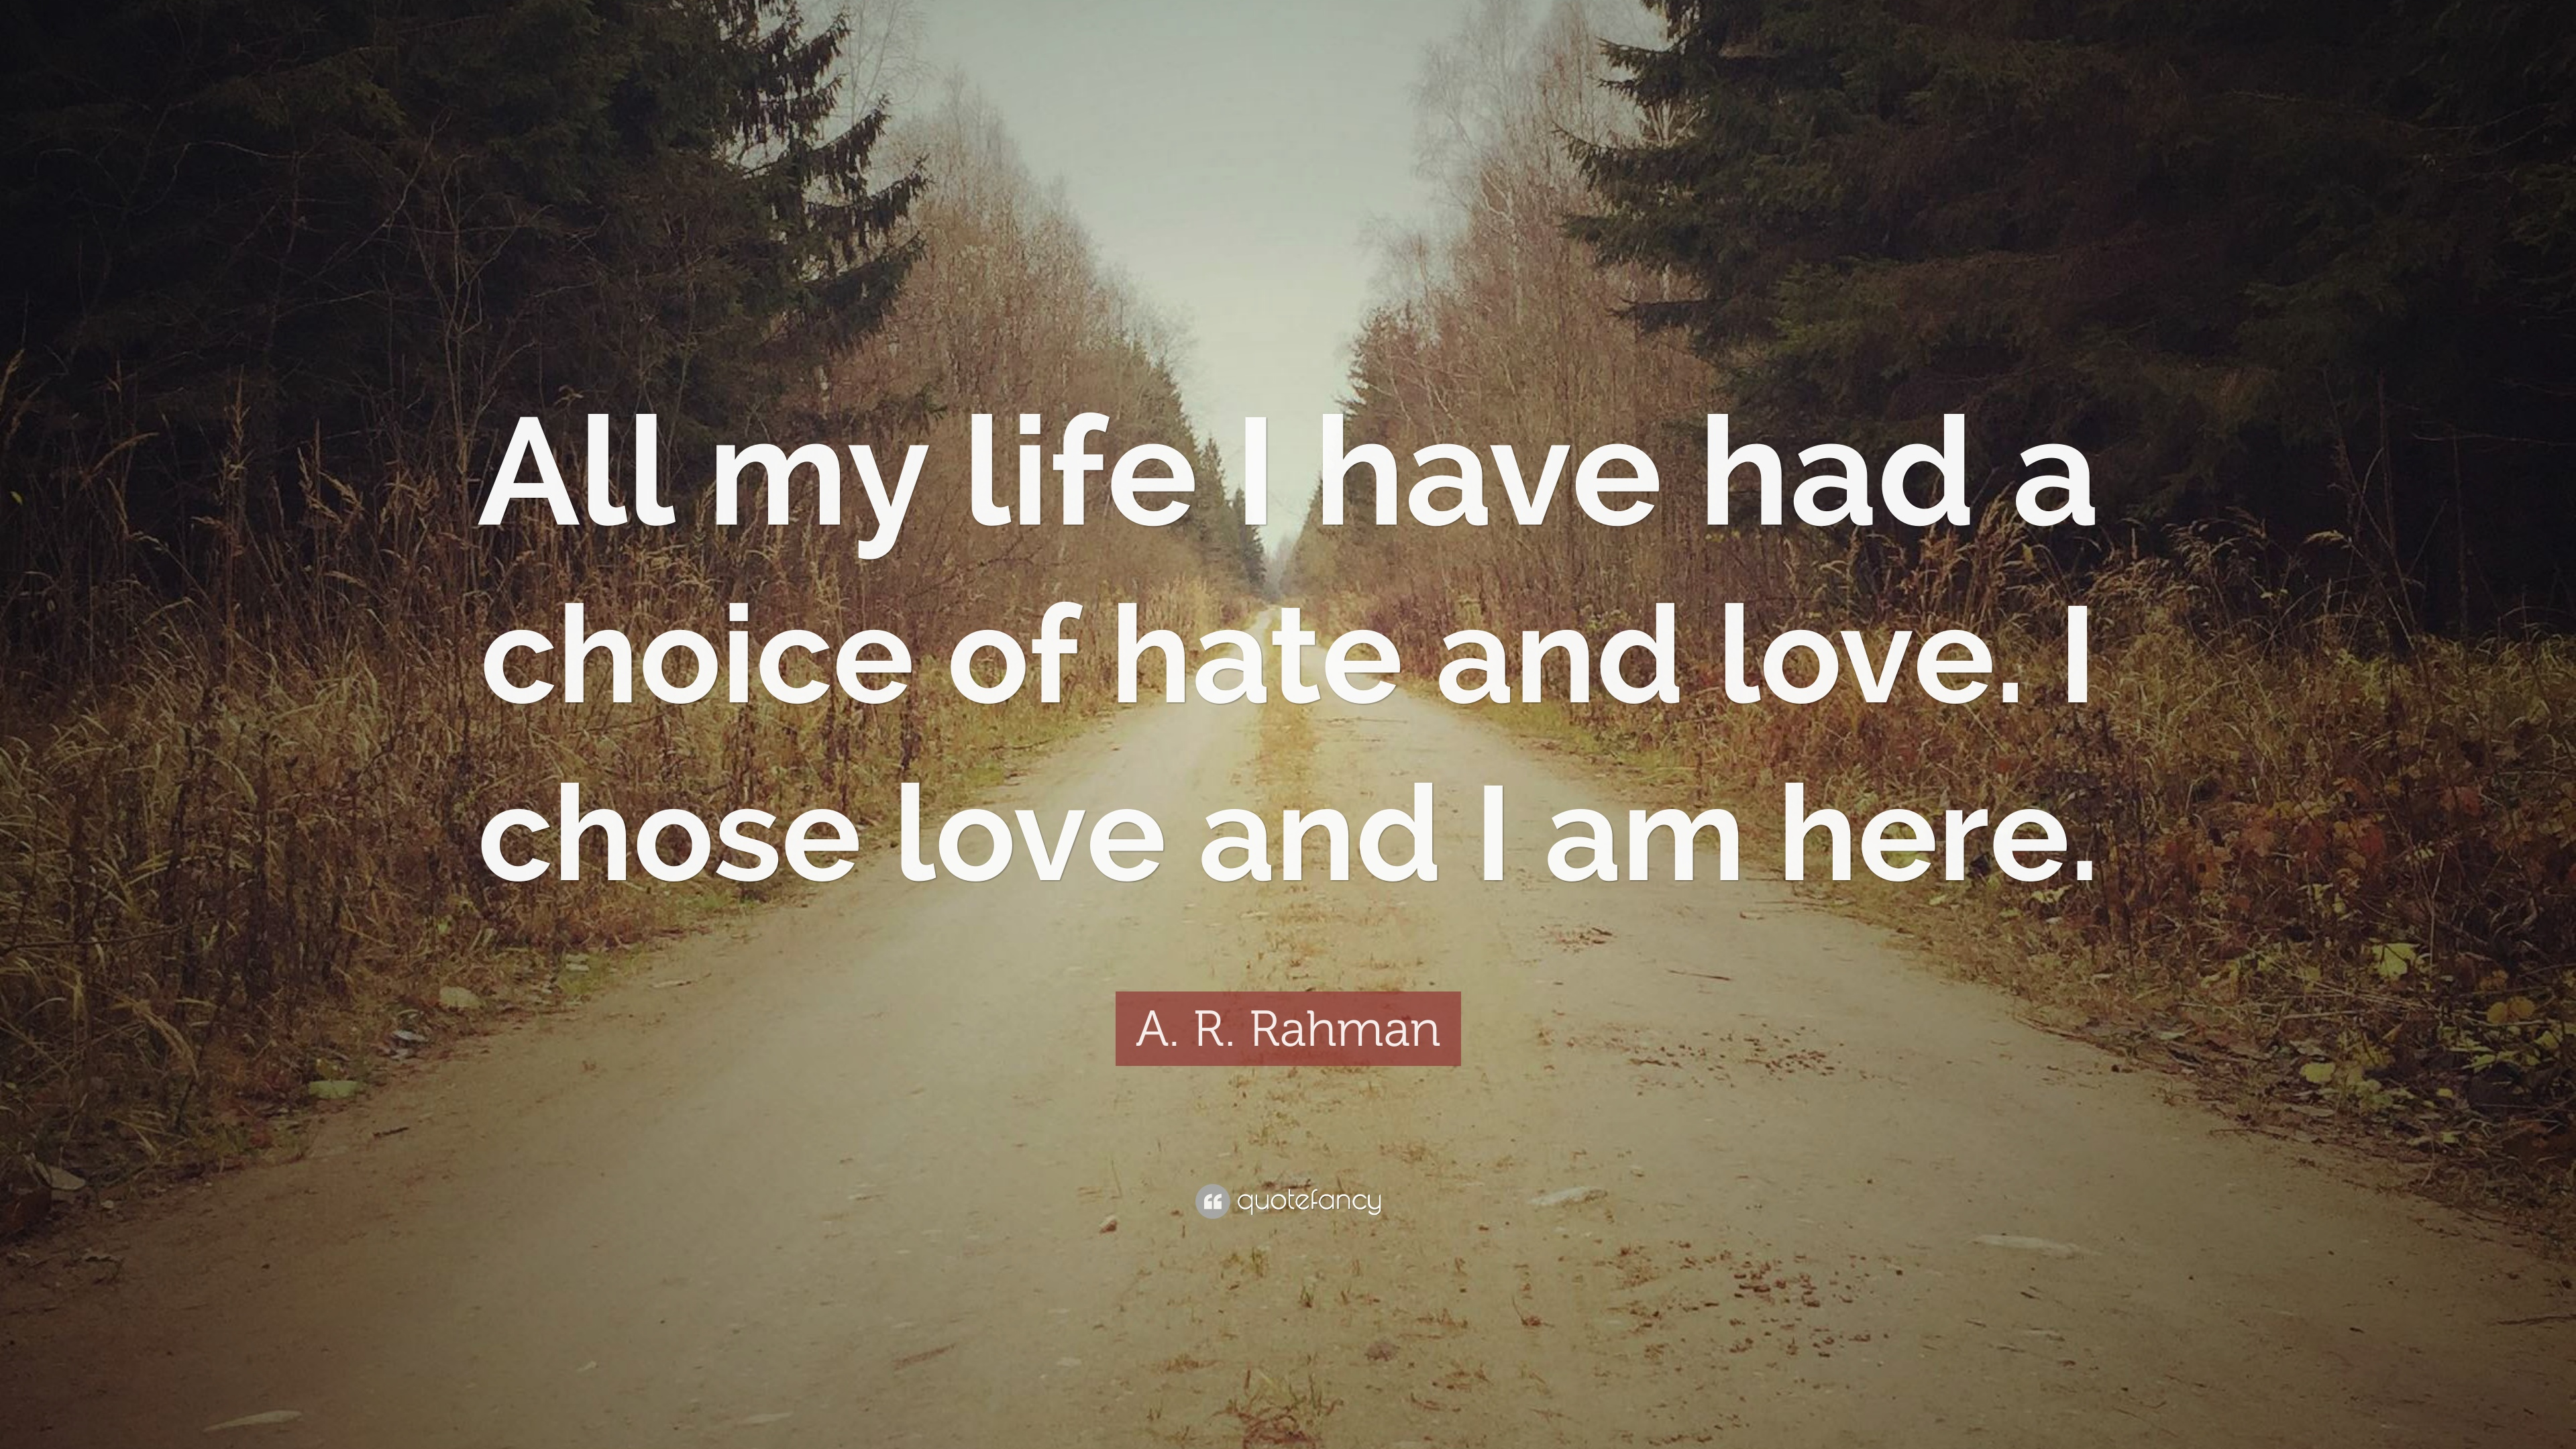 A R Rahman Quote All My Life I Have Had A Choice Of Hate And